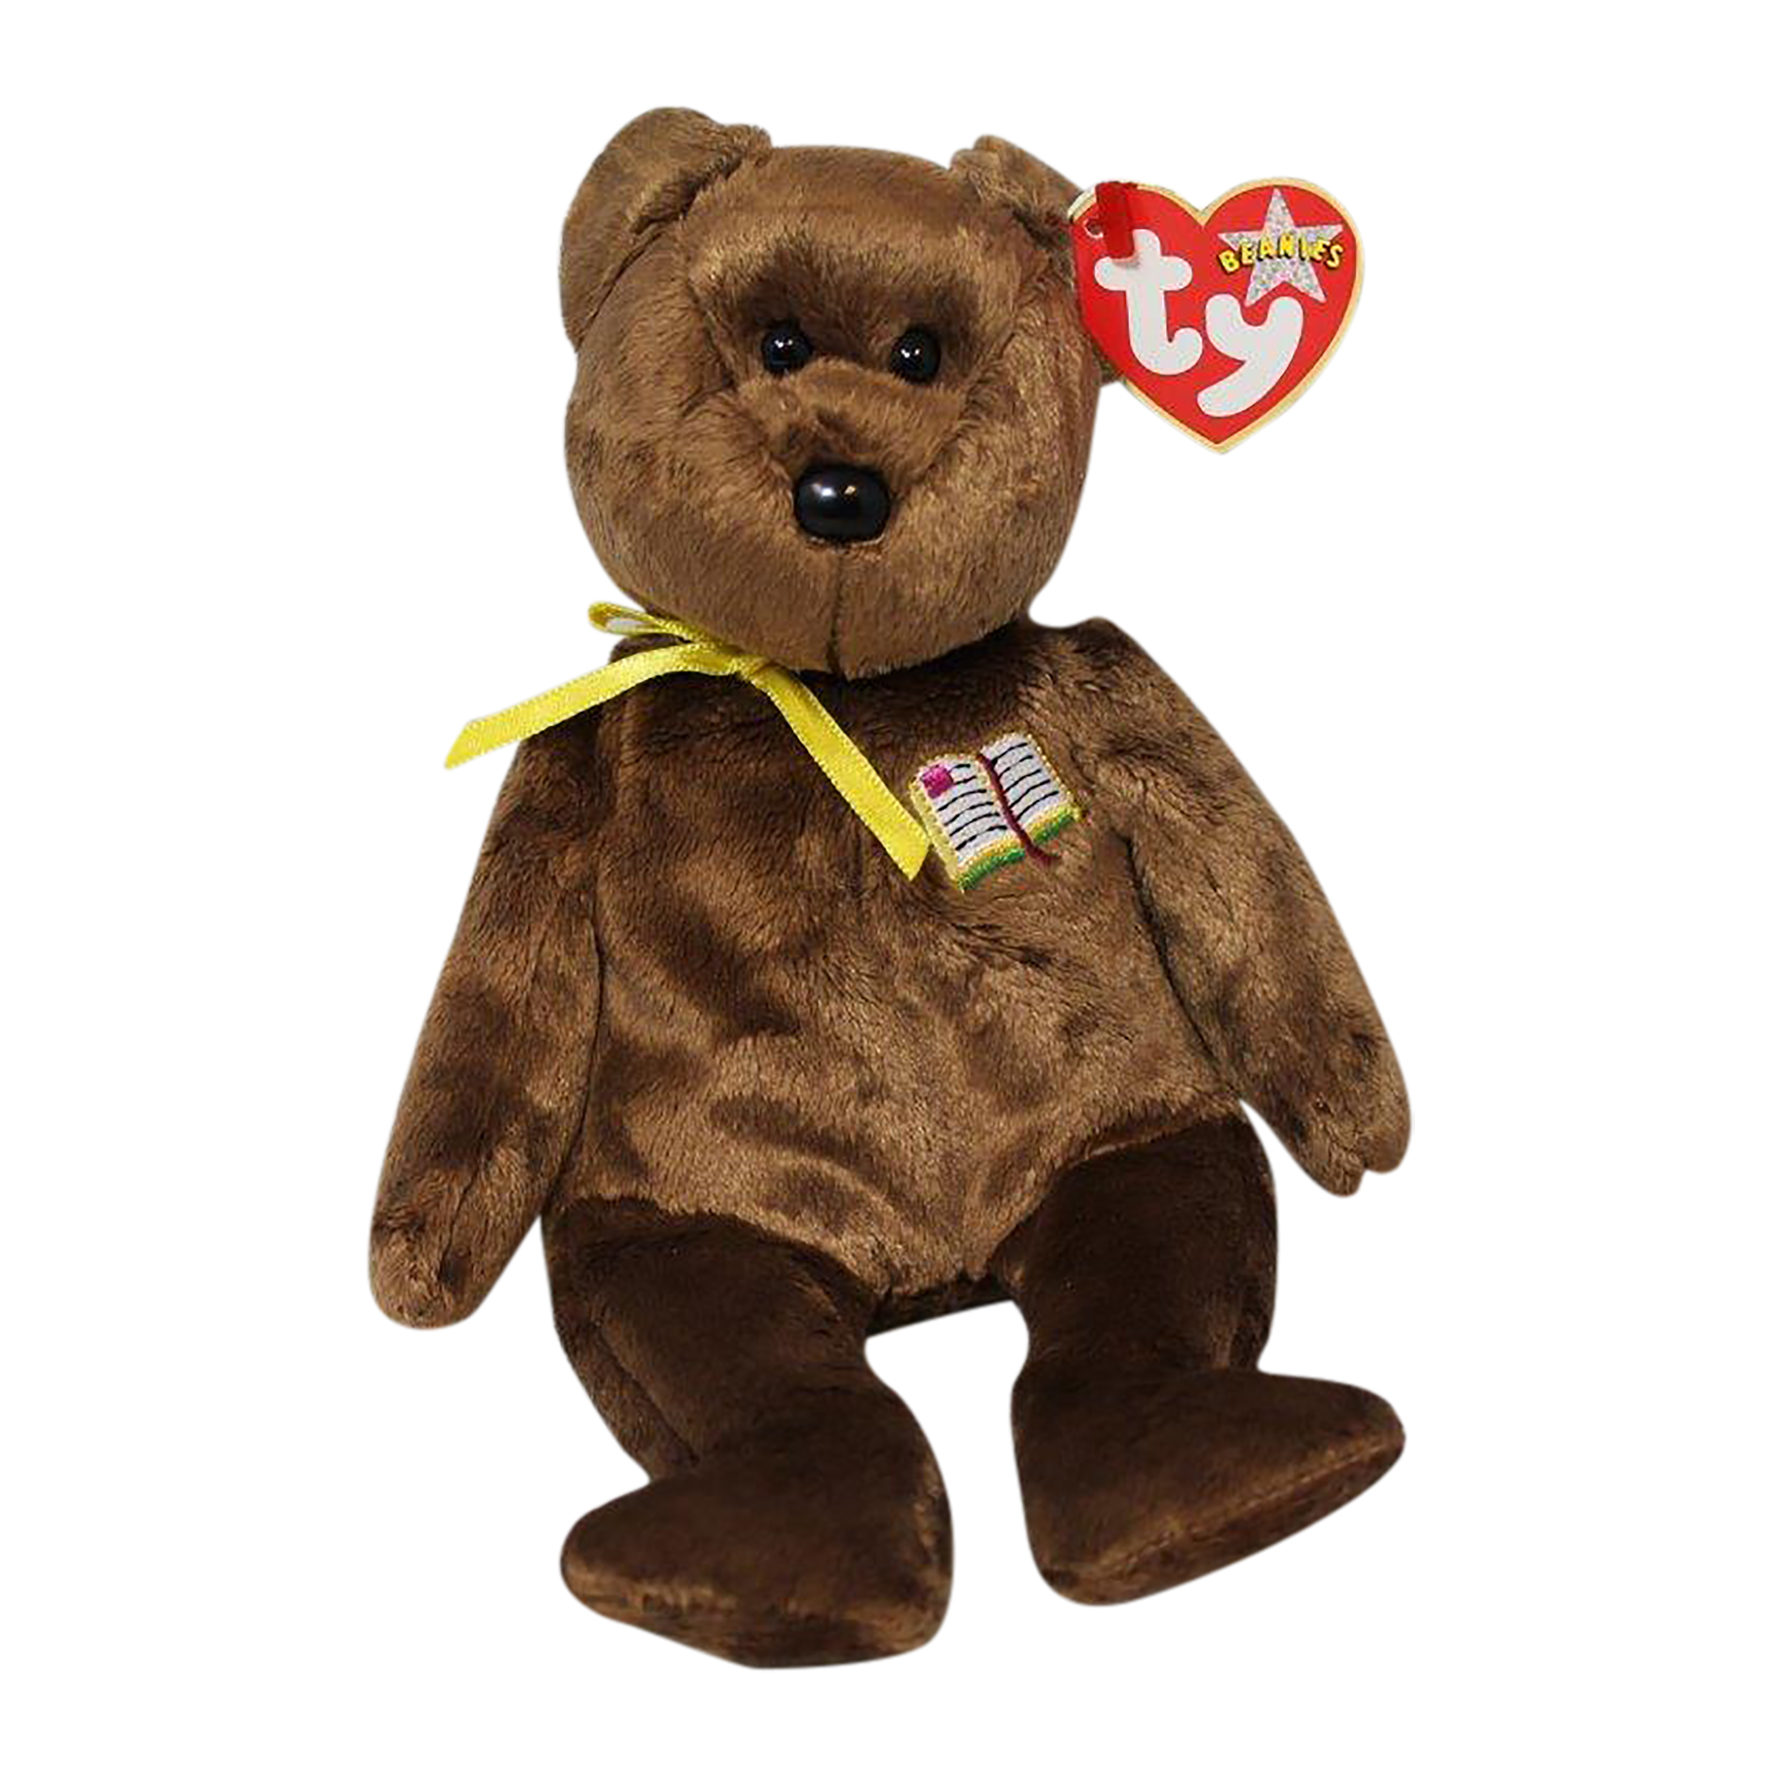 ea84fc8af20 Ty Beanie Baby William open - MWMT (Bear Open Book Version UK ...